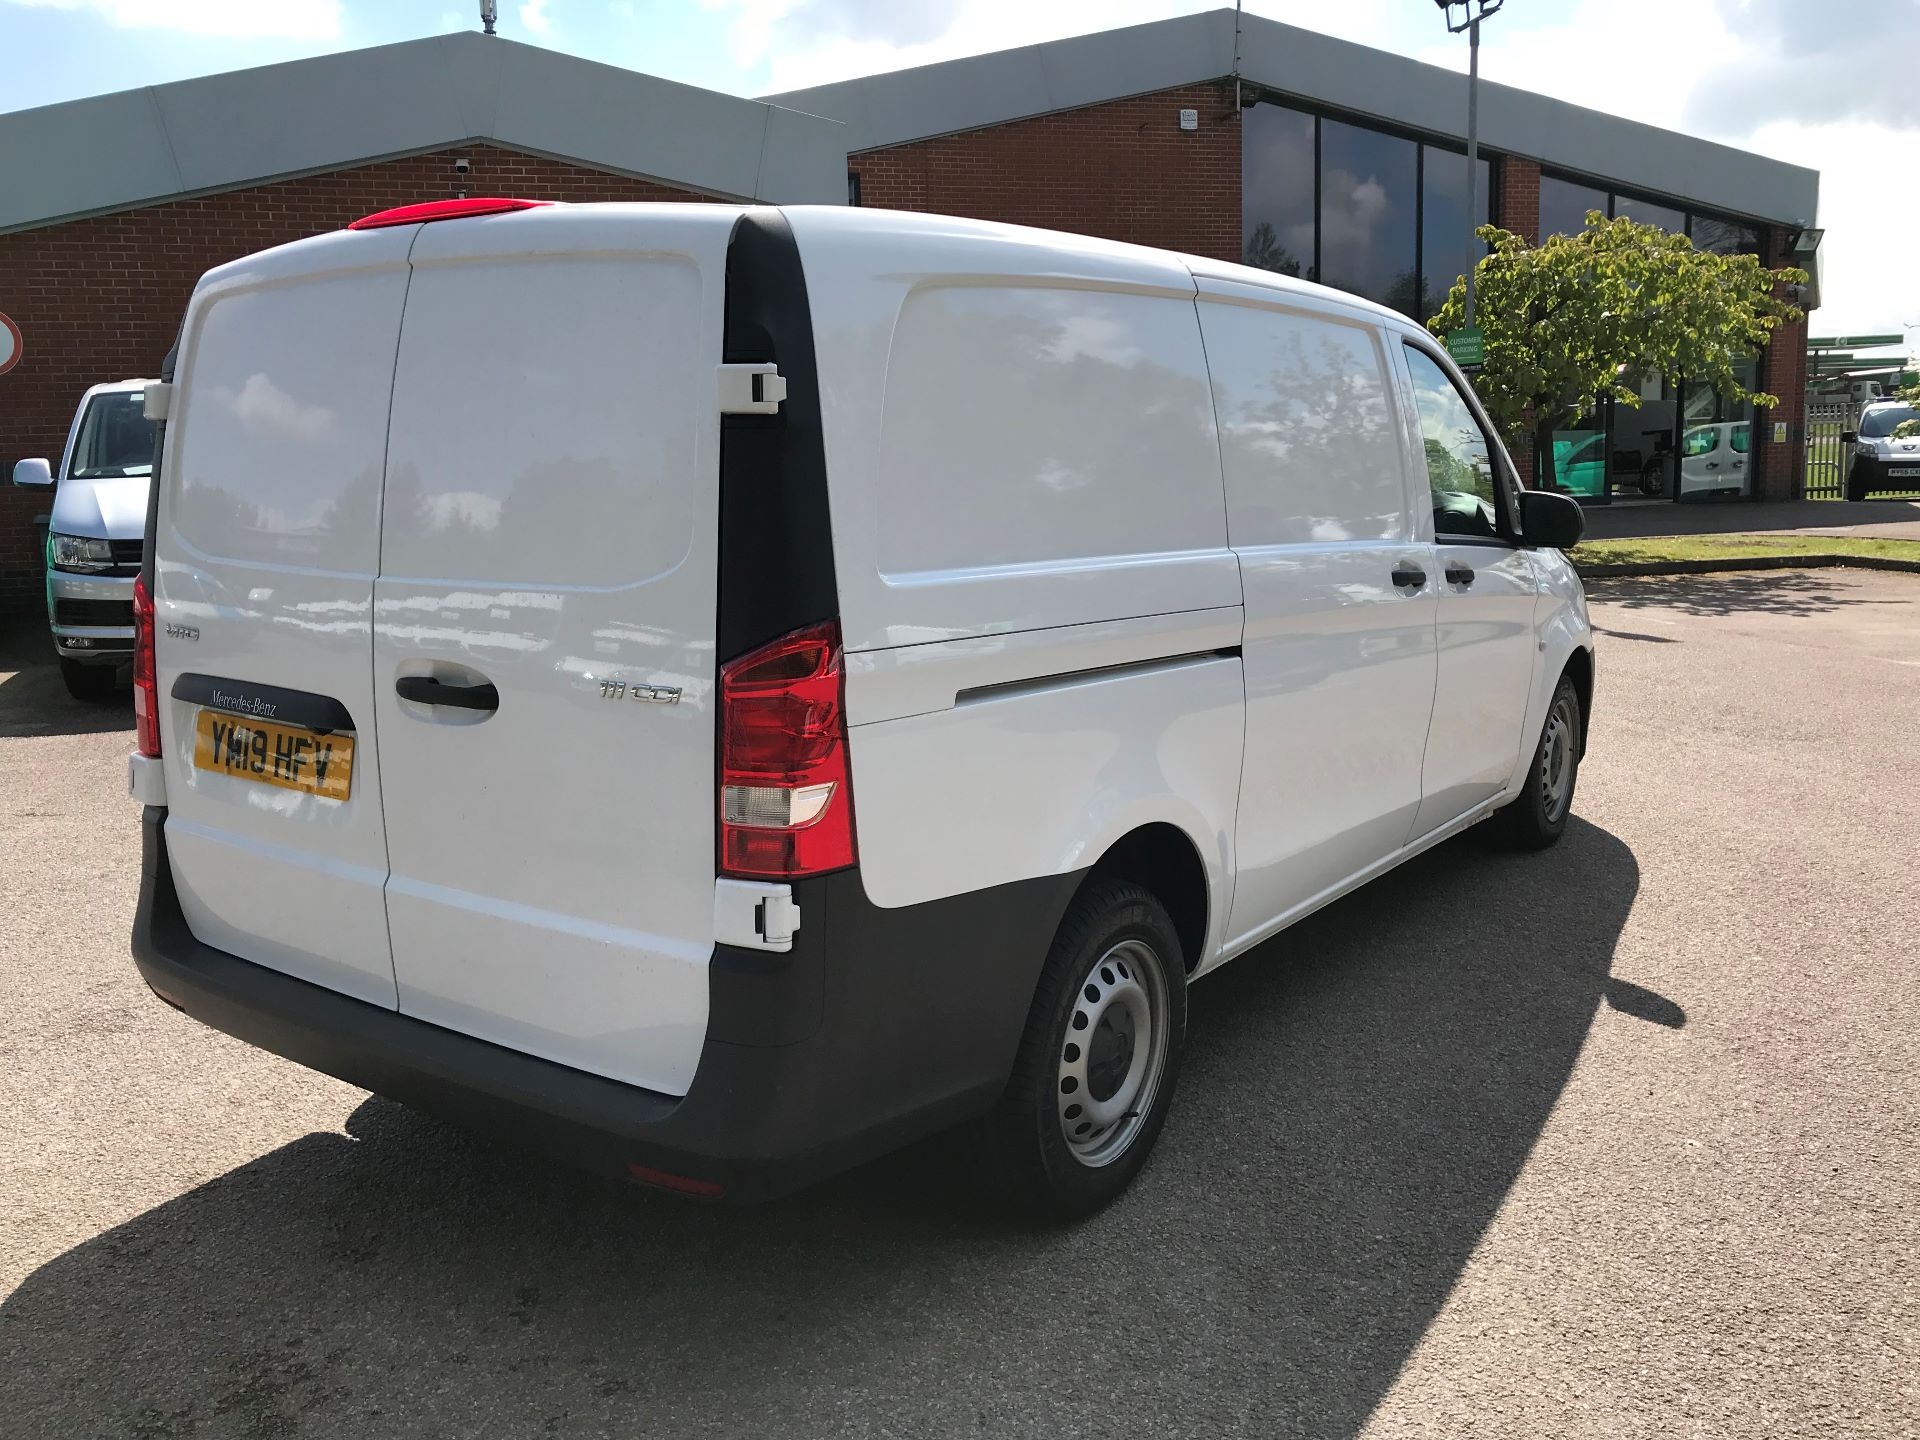 2019 Mercedes-Benz Vito 111Cdi Van Euro 6 Massive specification A/C (YM19HFV) Image 8